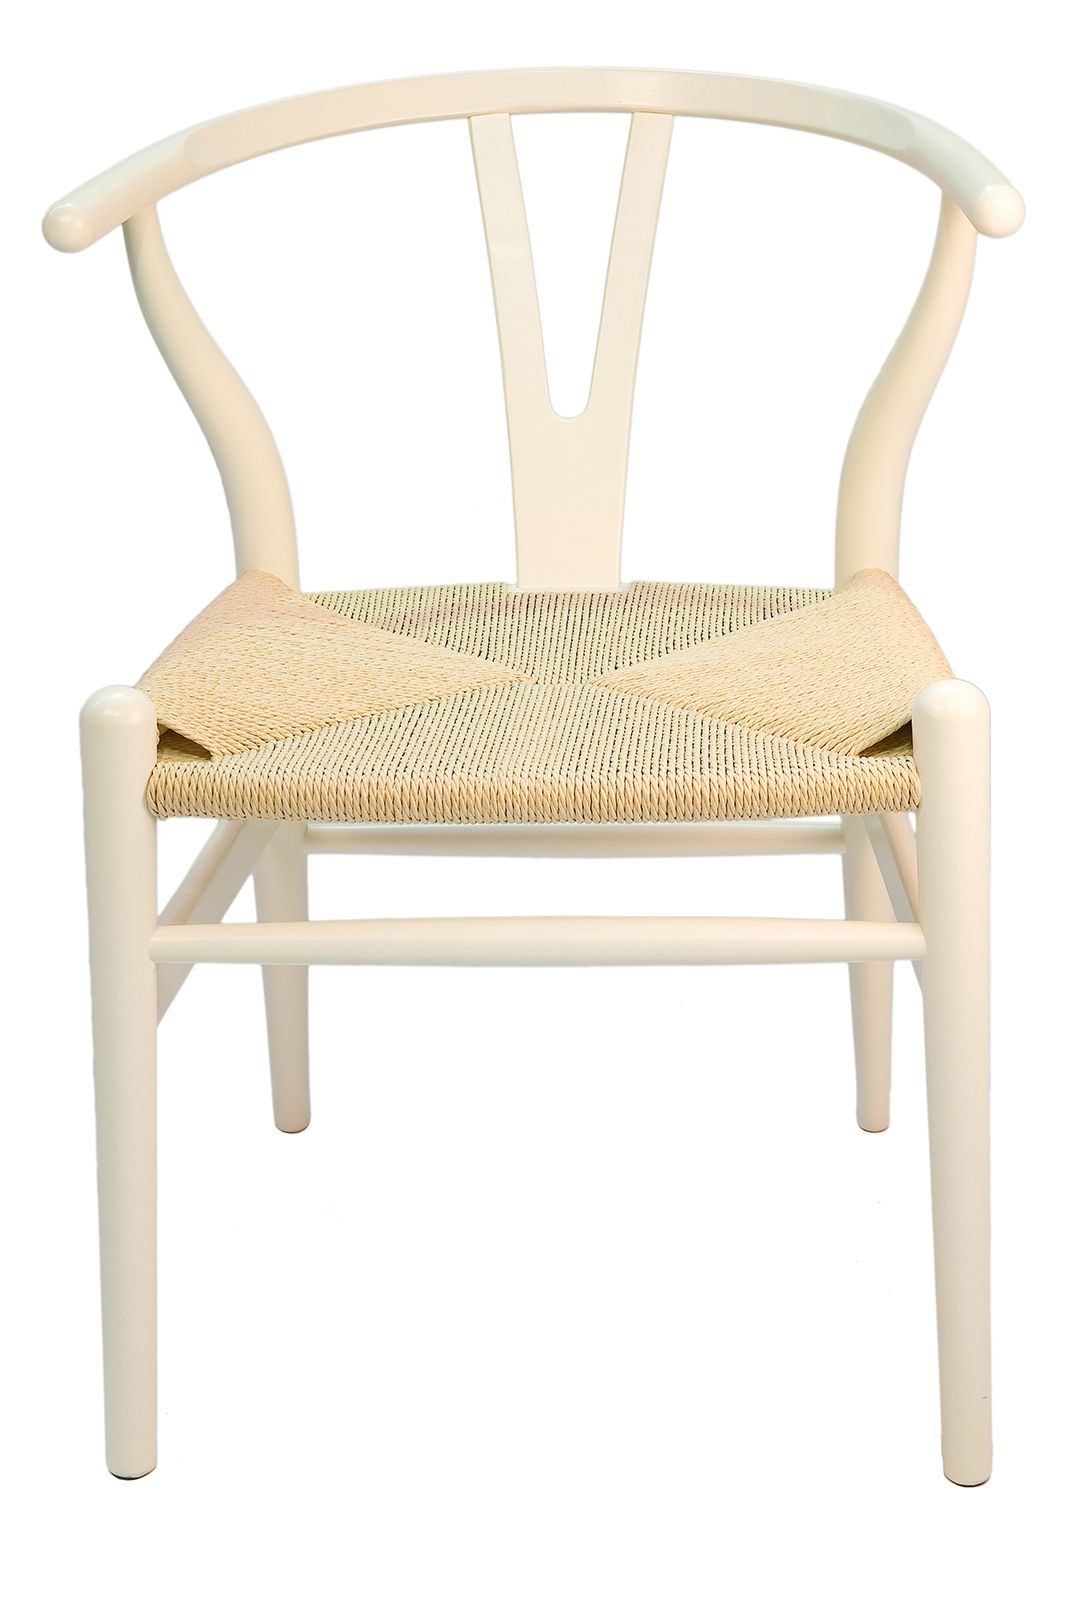 Replica Hans Wegner Wishbone Chair | White Frame & Natural Seat